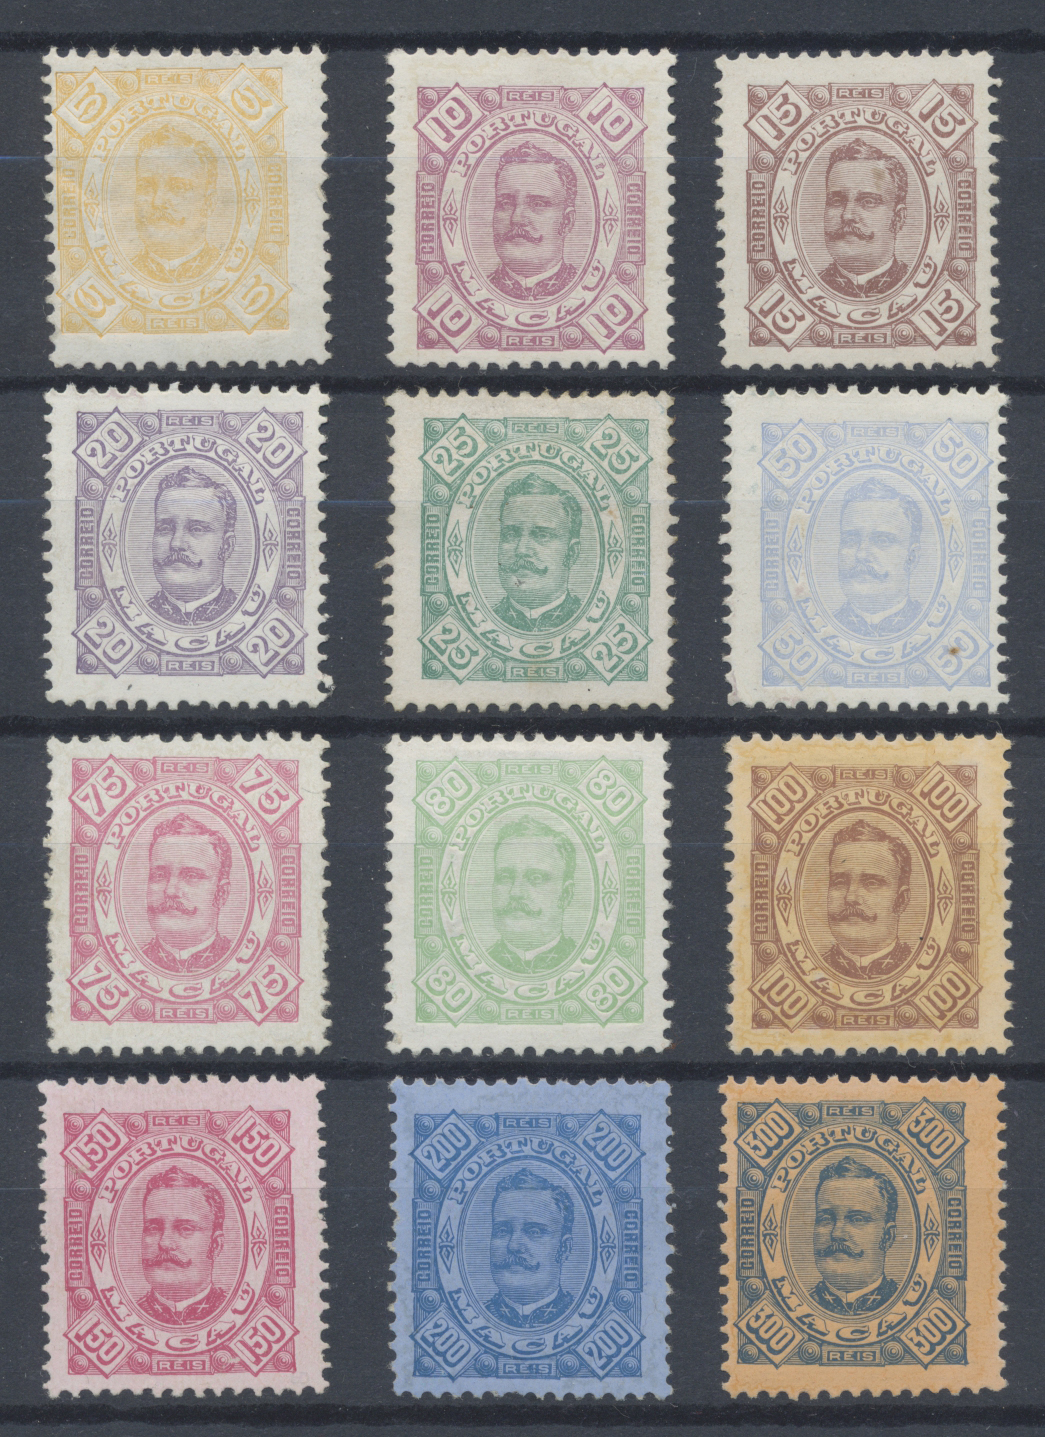 Lot 13972 - macau  -  Auktionshaus Christoph Gärtner GmbH & Co. KG Sale #48 collections Overseas  Airmail / Ship mail & Thematics